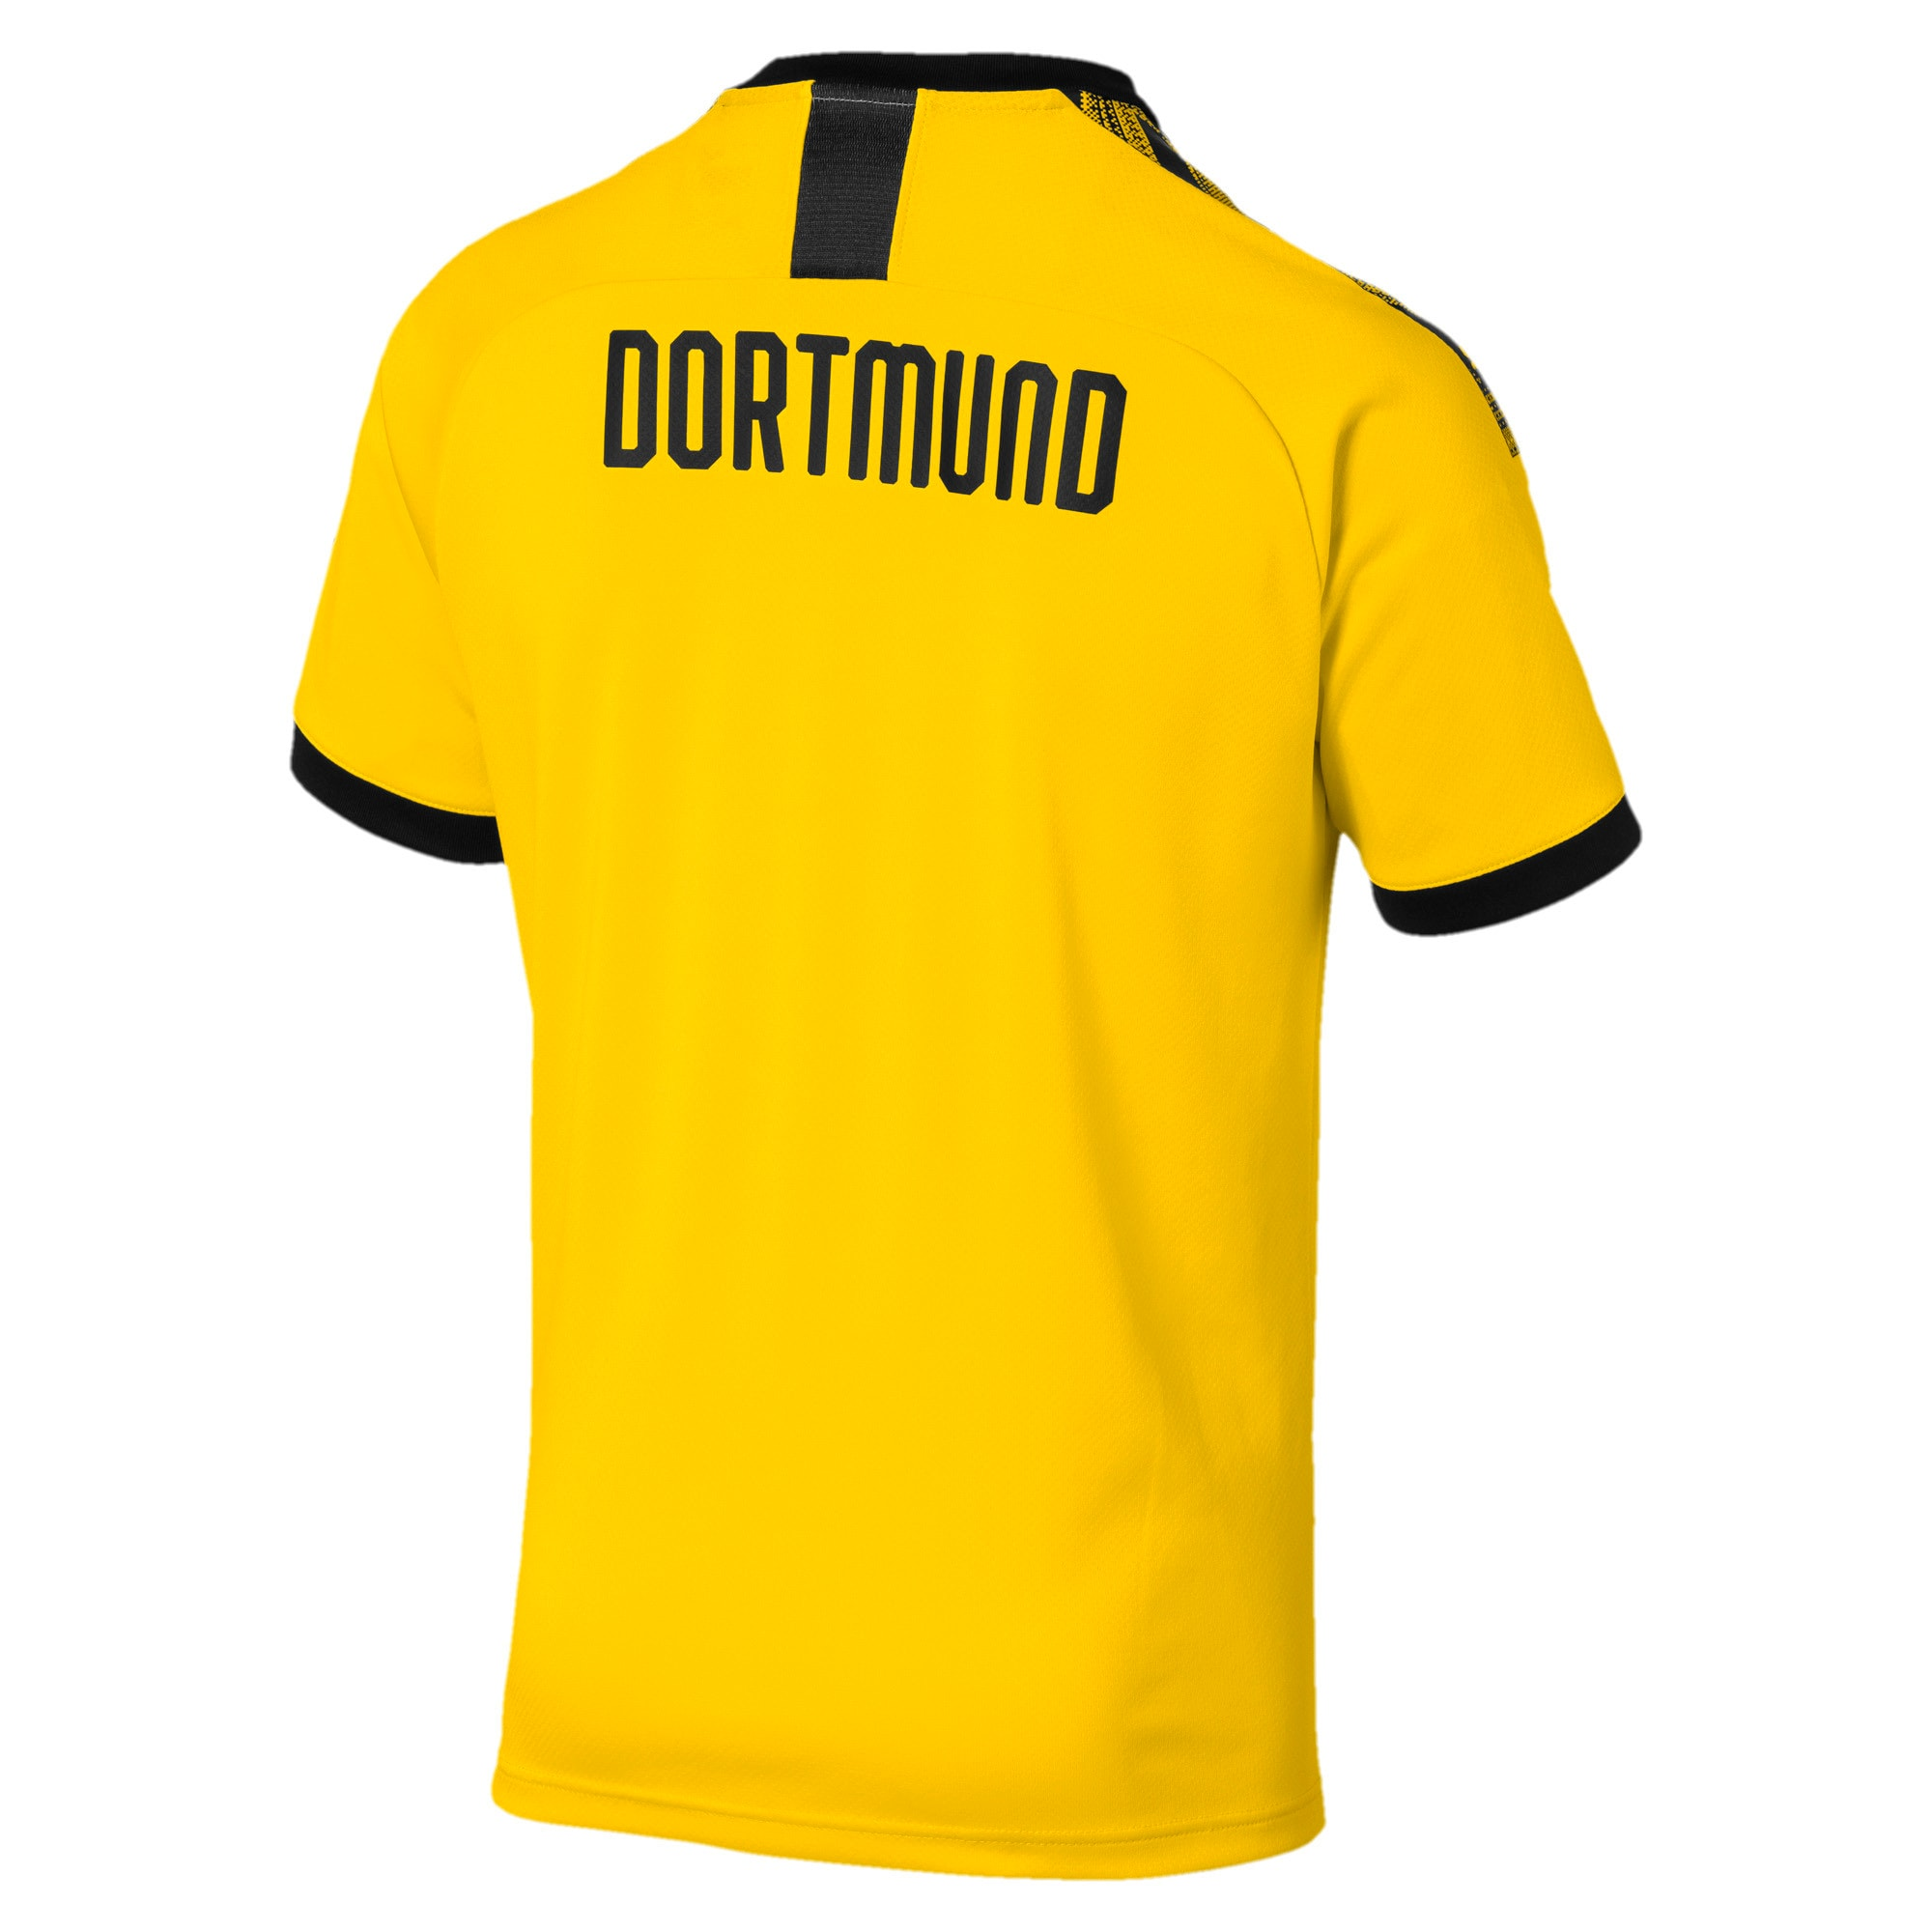 Thumbnail 2 of BVB Men's Home Replica Jersey, Cyber Yellow-Puma Black, medium